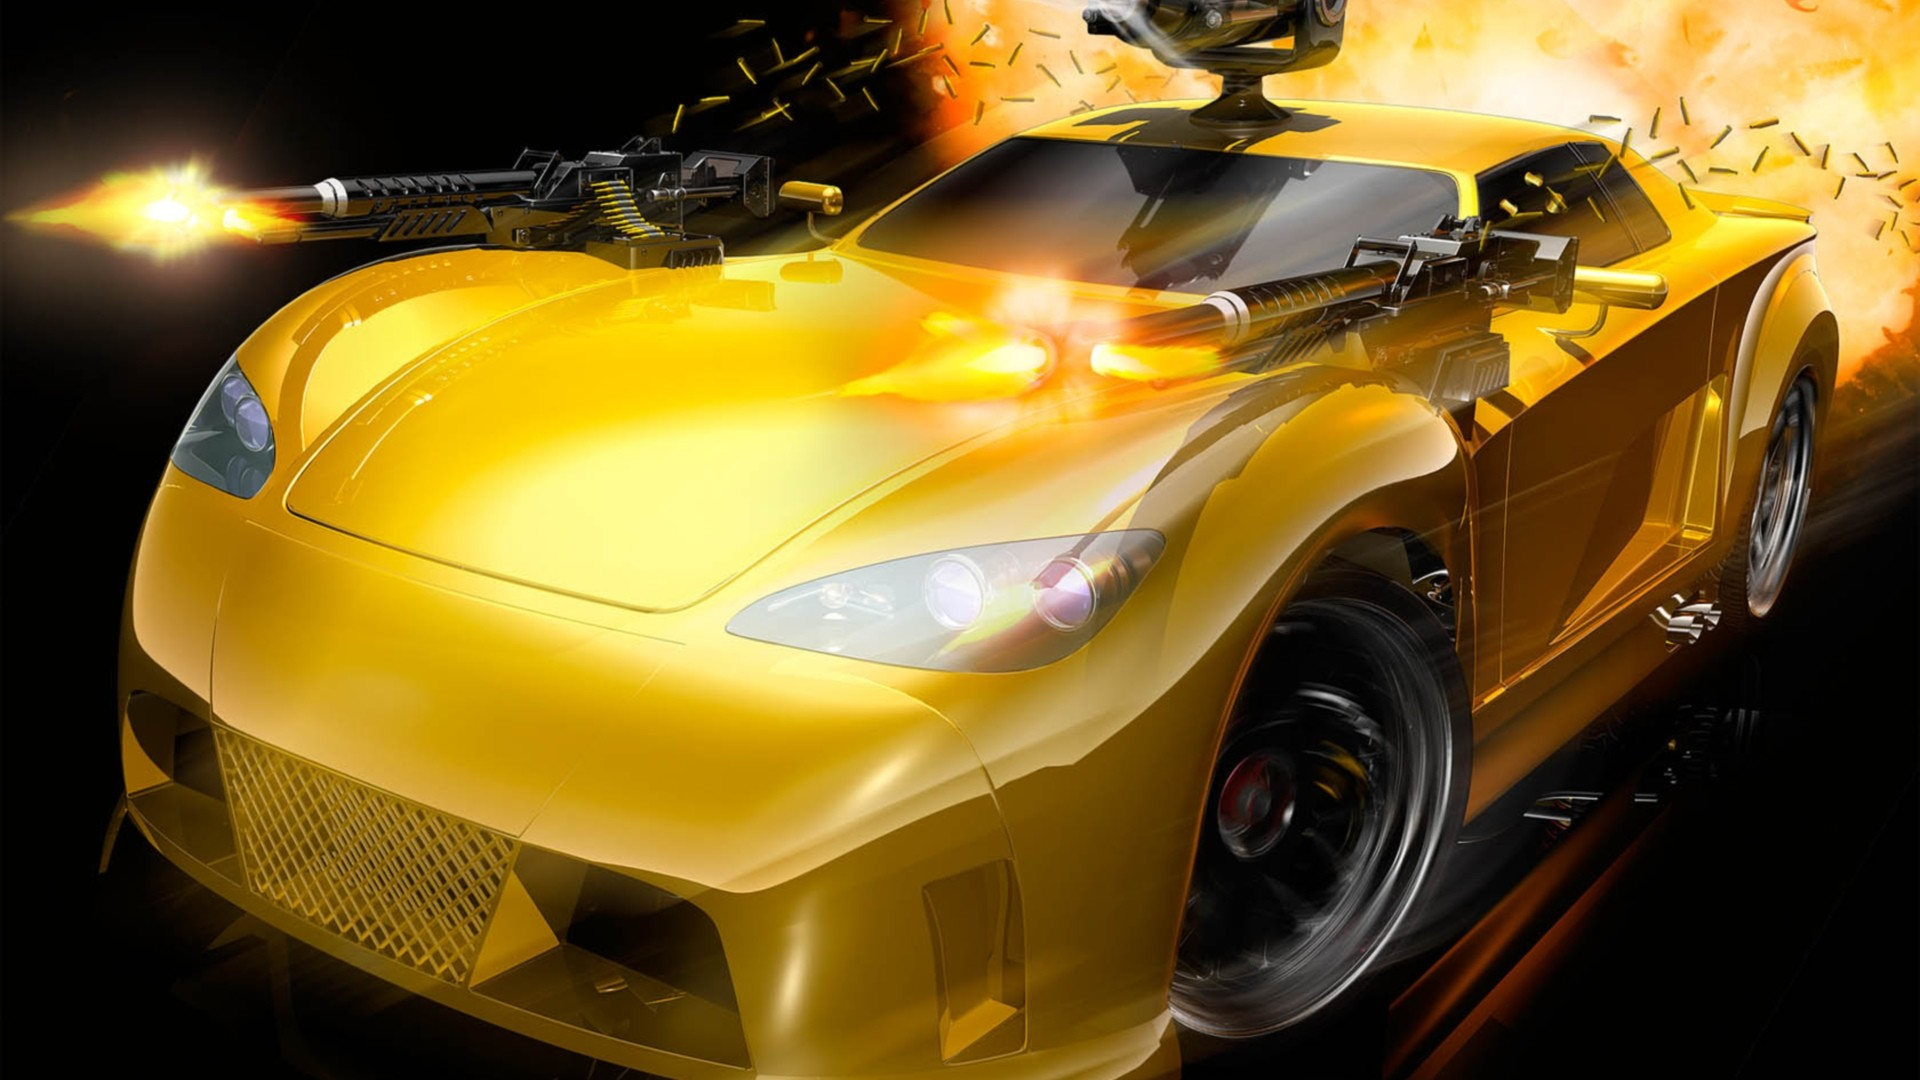 Res: 1920x1080, Free Yellow Sports Car Psp Wallpapers Full Hd Pics Desktop Fullauto Nvertor  Refed Glock Cute Auto For Androids